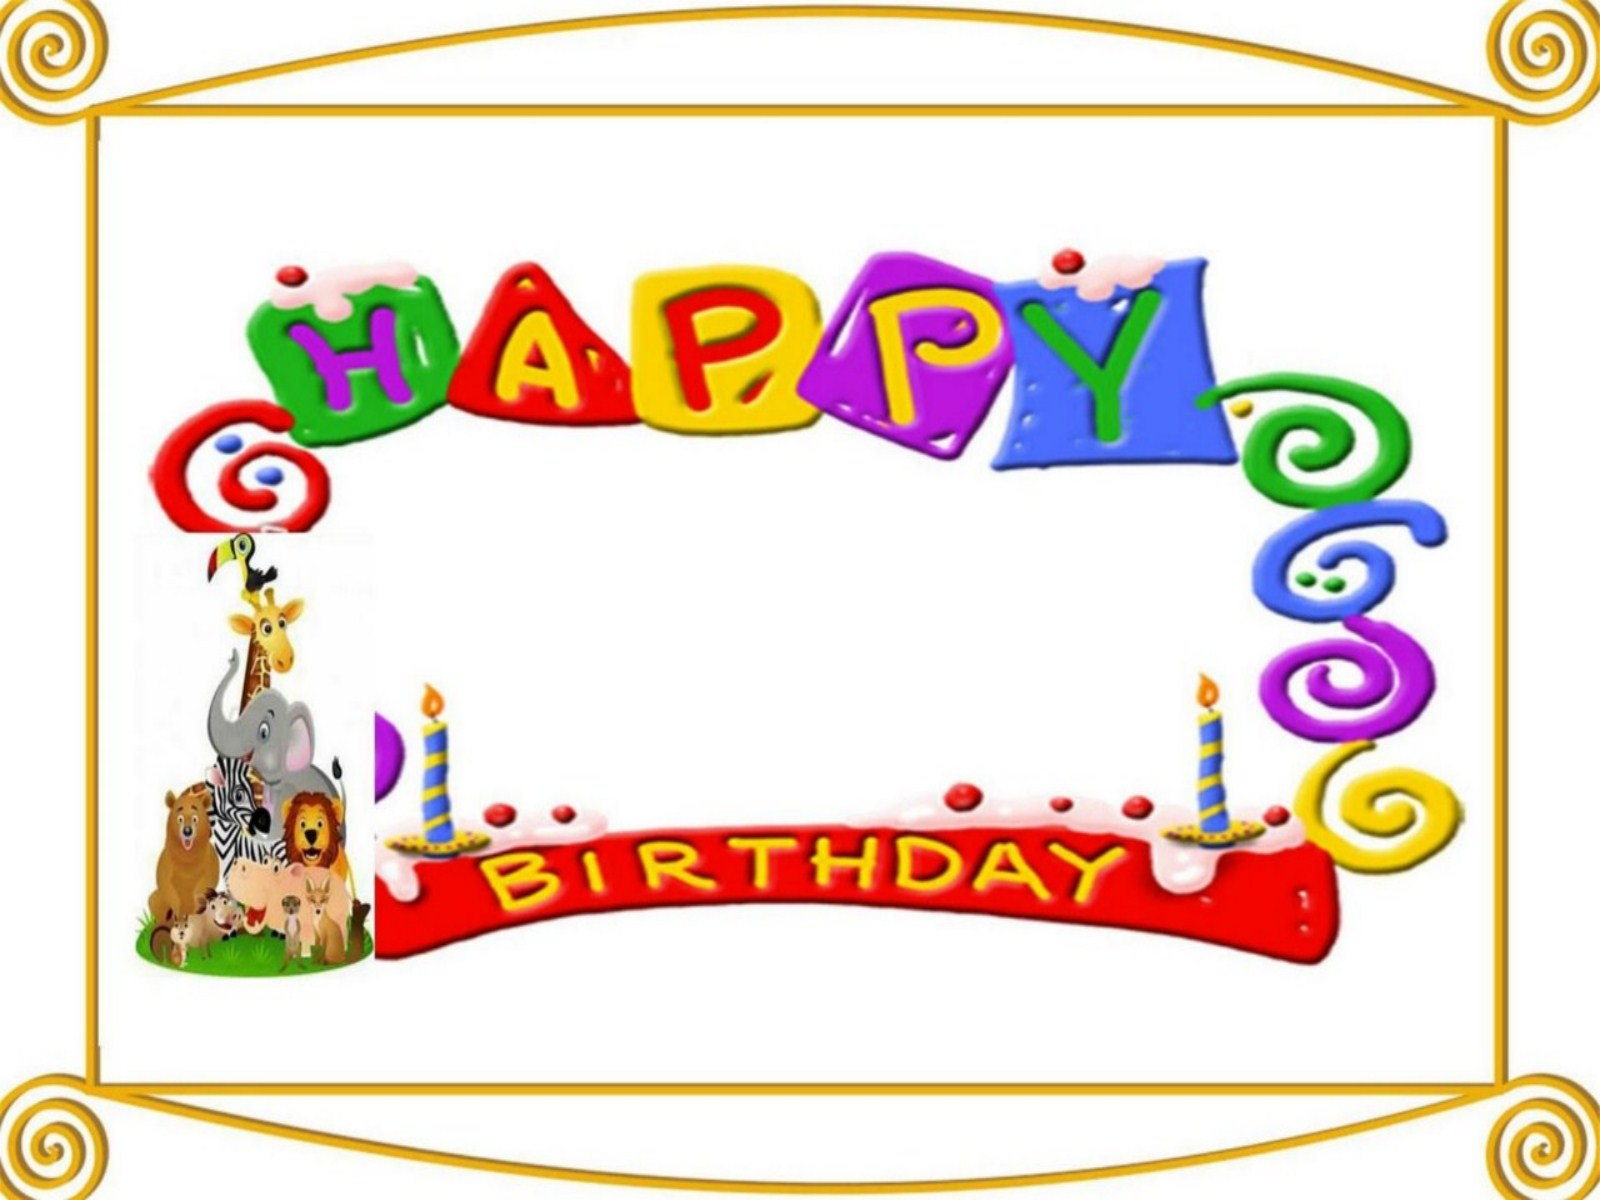 free download happy birthday pics wallpaper iphone wallpapers and Car 1600x1200